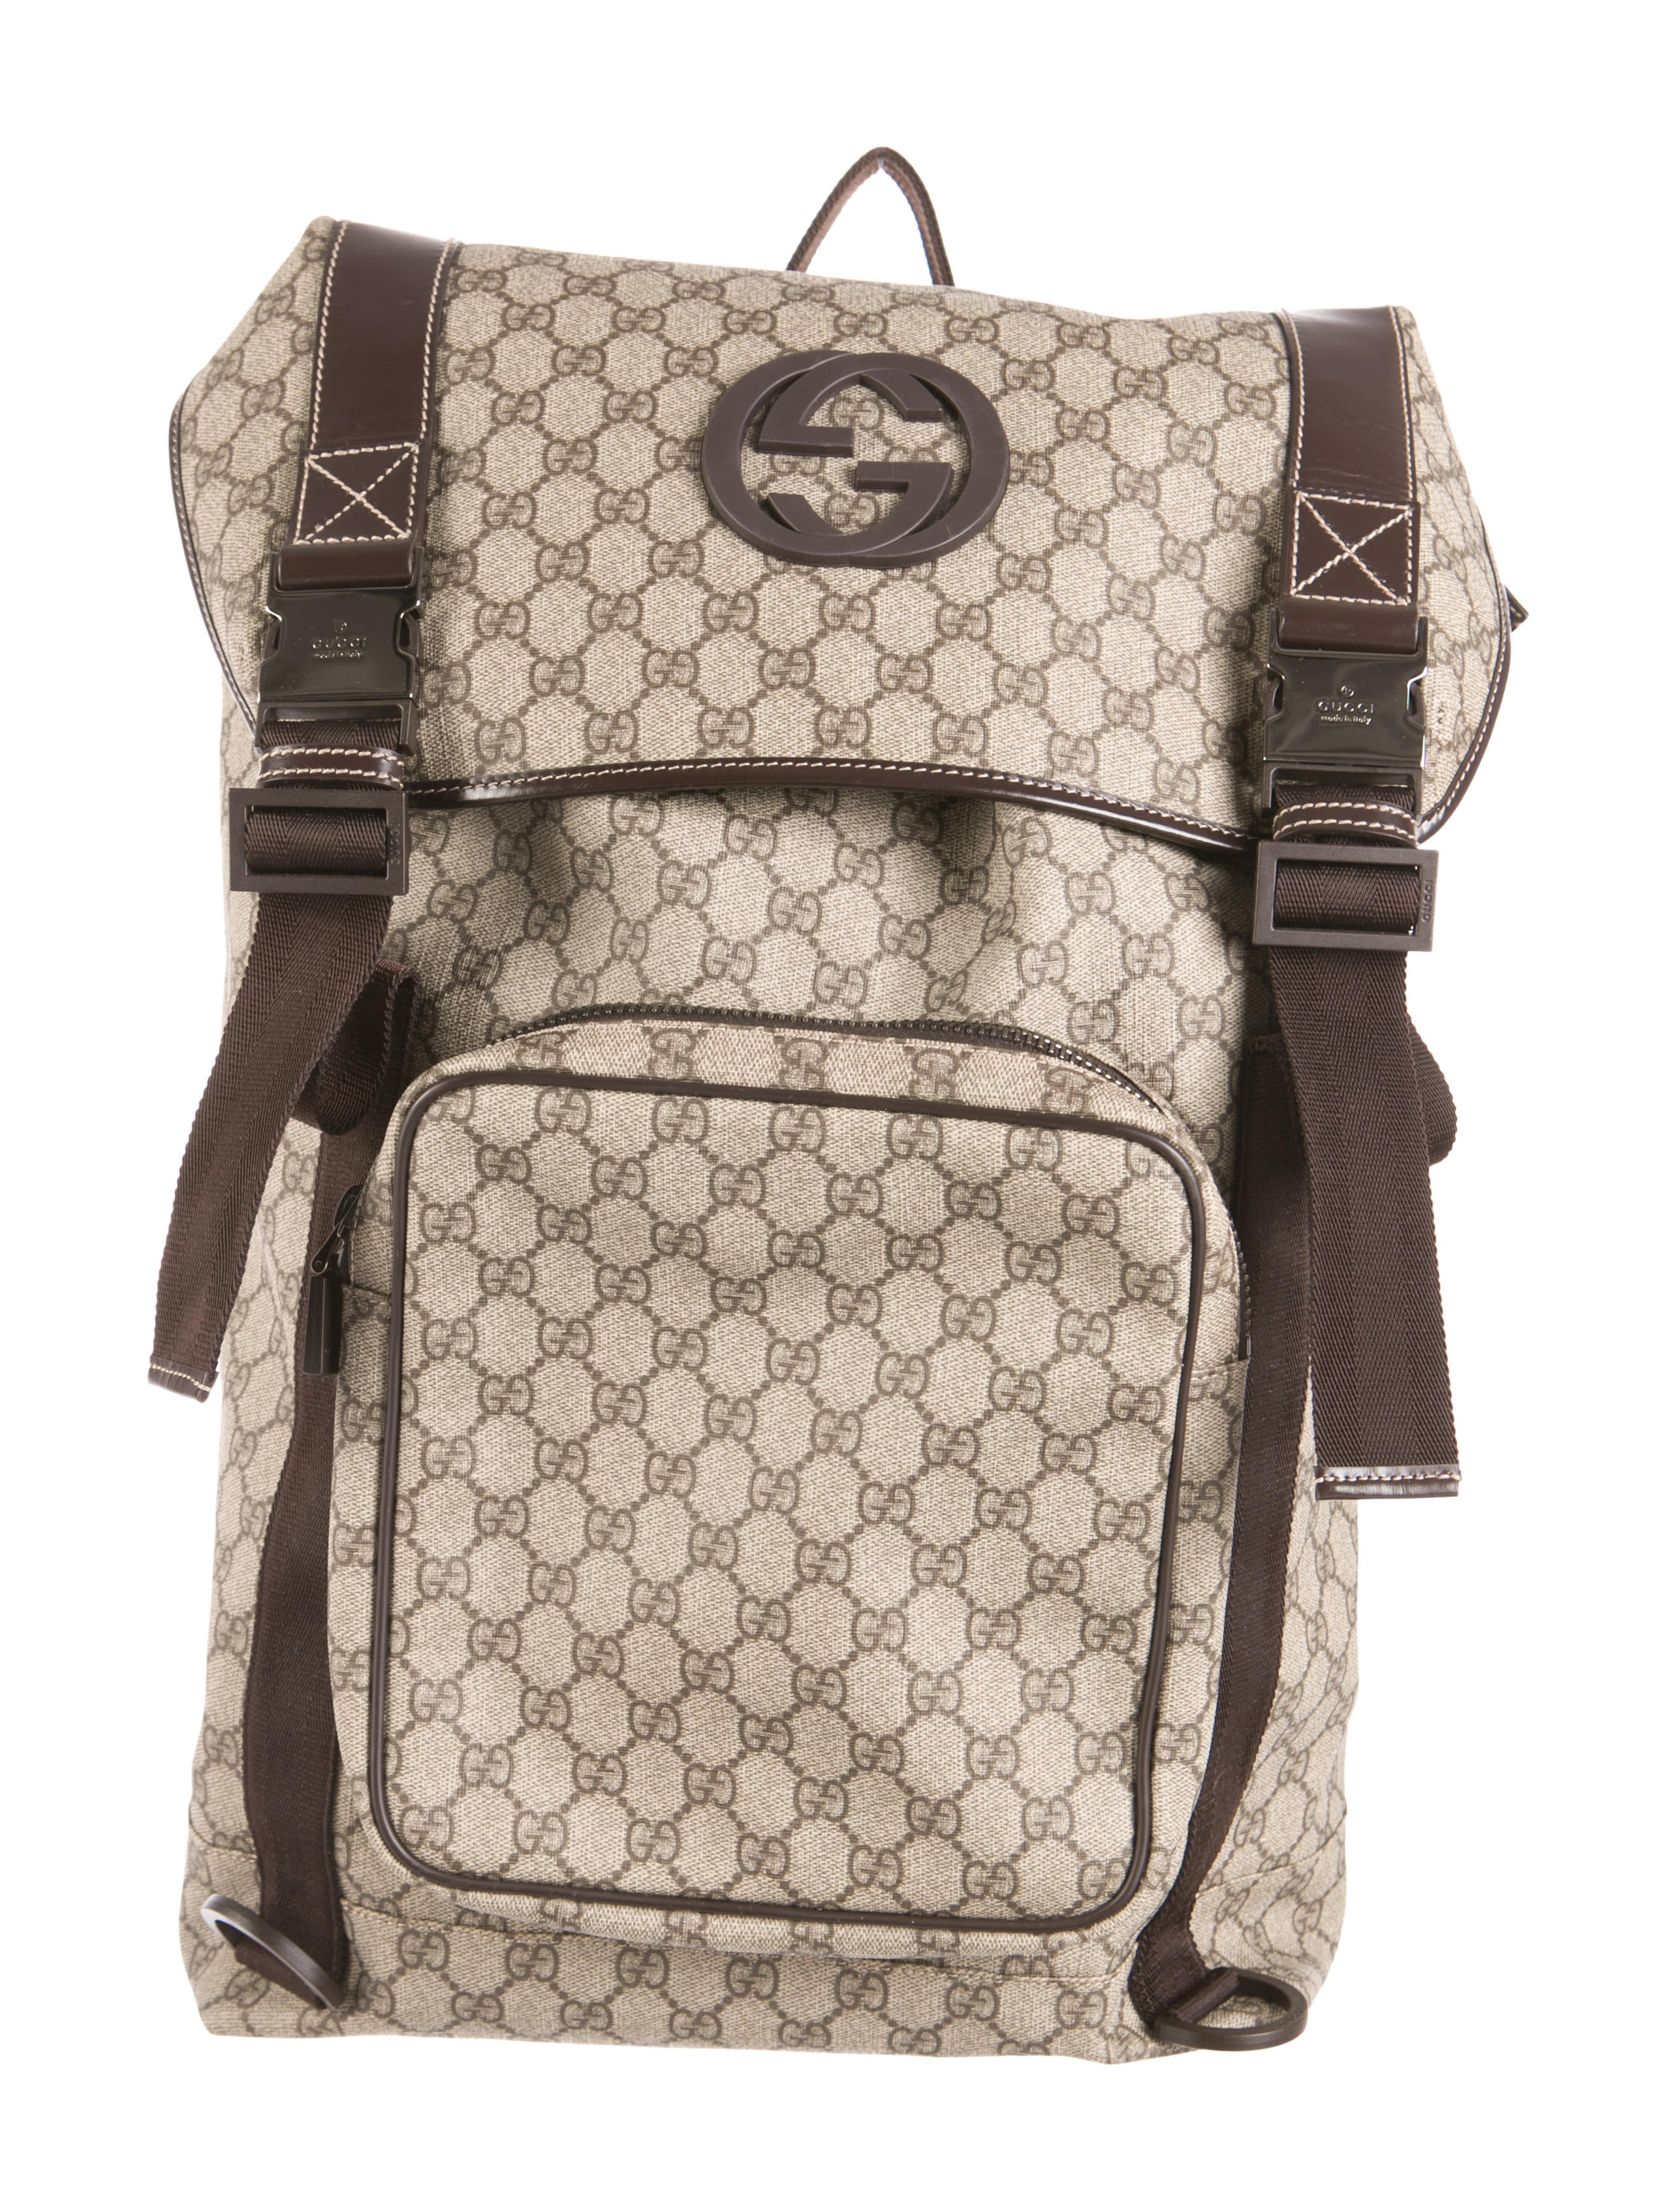 6139035beaf7eb Gucci GG Plus Interlocking G Backpack - Bags - GUC82239 | The RealReal